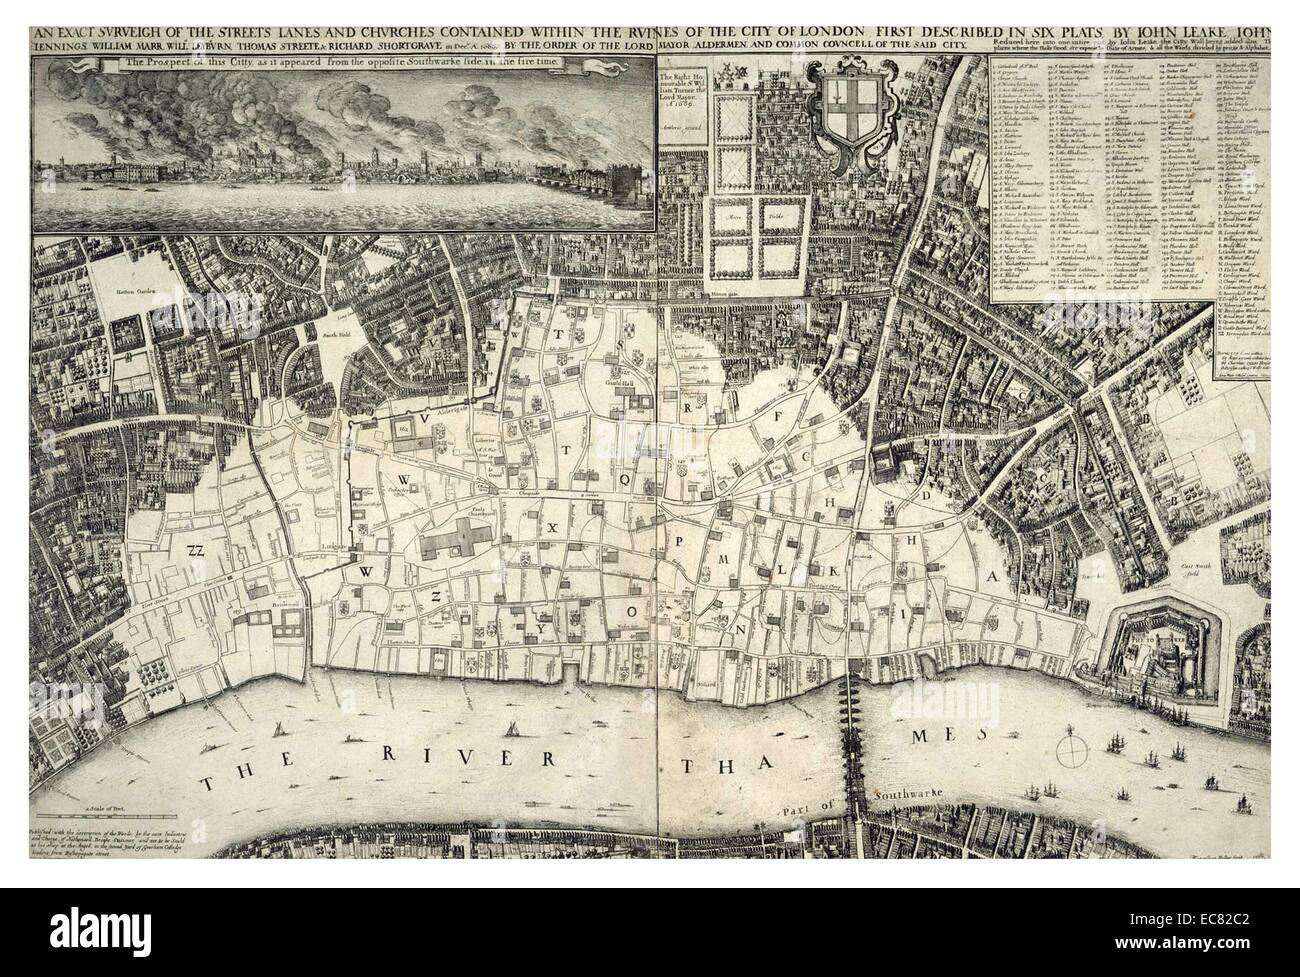 map, of central London; England dated 1677; shows the re-built areas of the  city after the 'Great Fire of London'